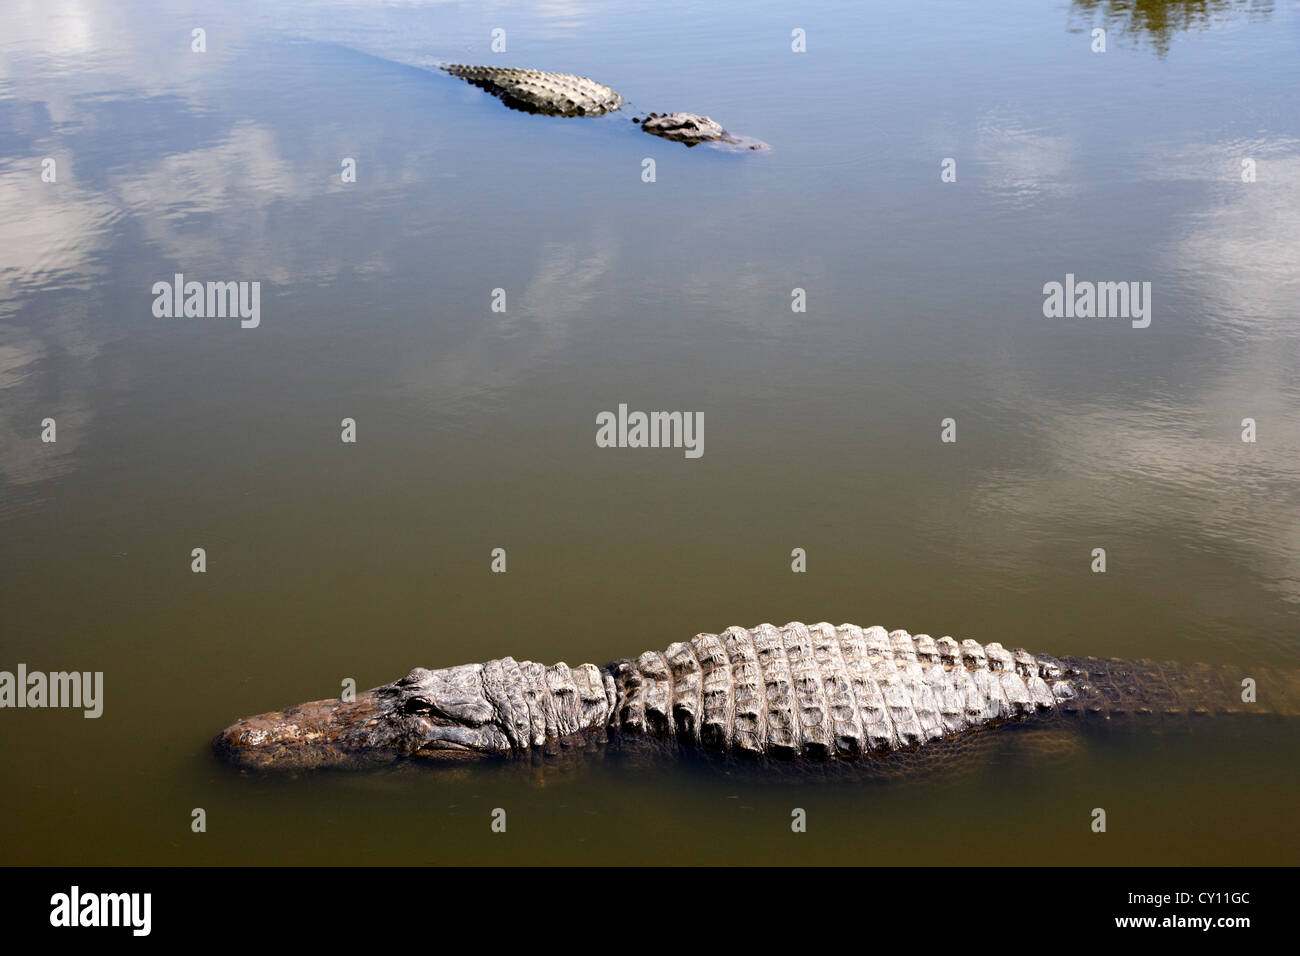 two large american alligators swimming floating near water surface florida usa - Stock Image